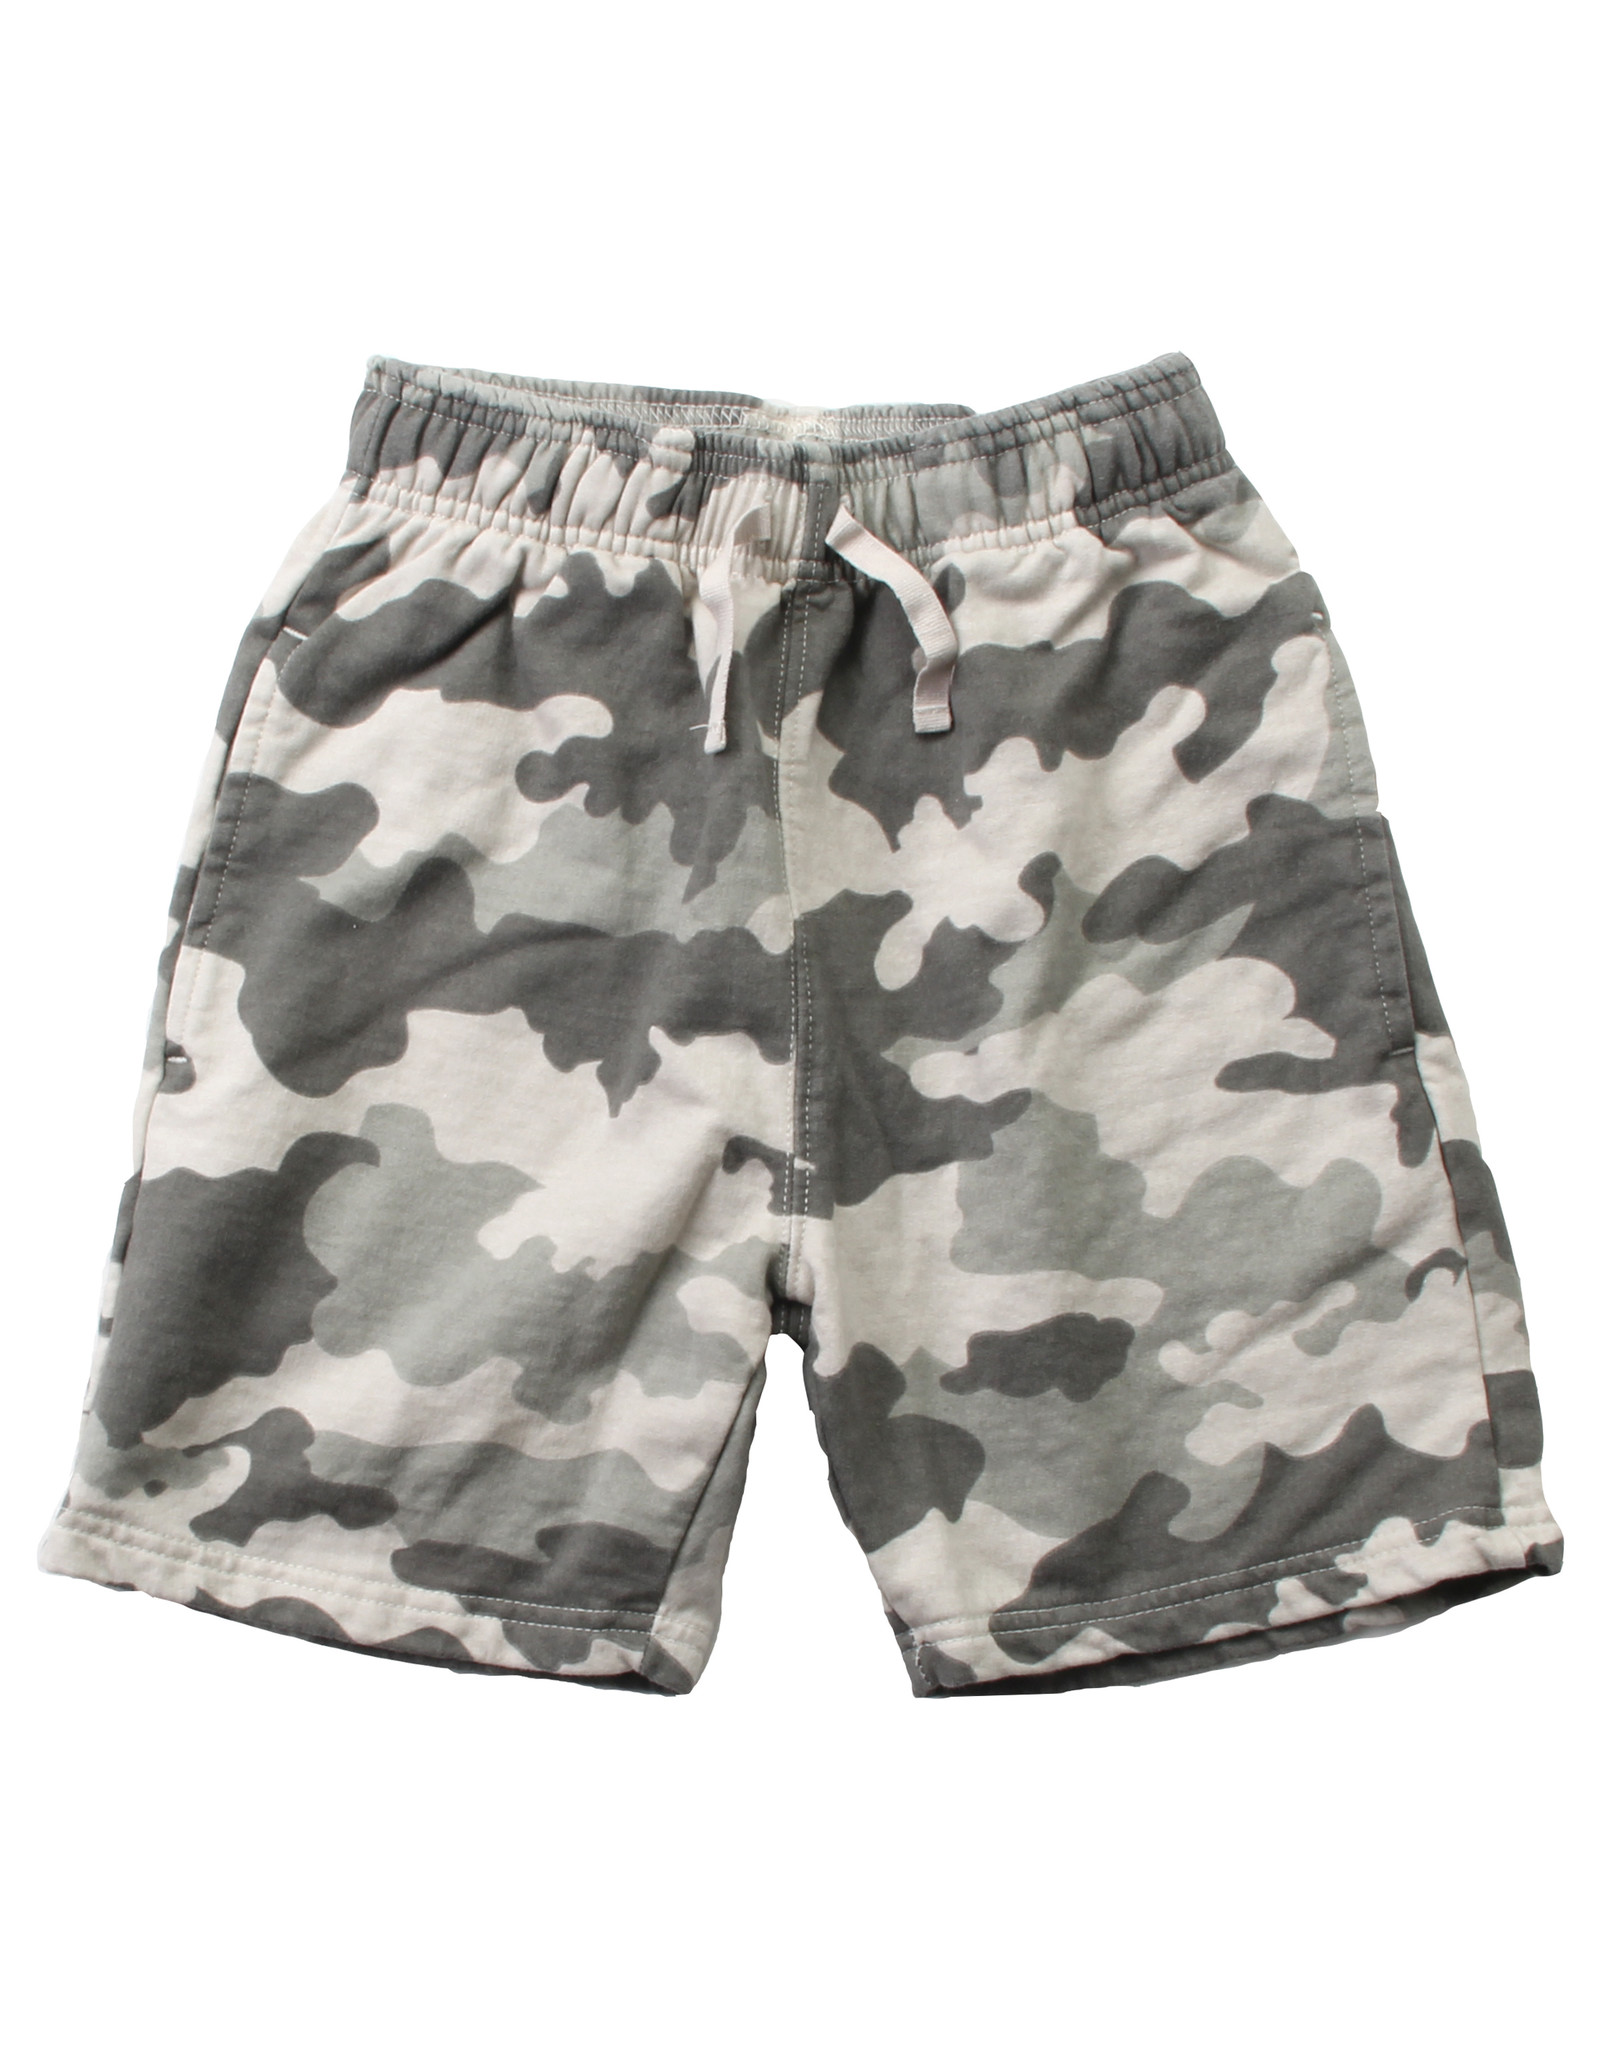 Wes & Willy Camo Shorts